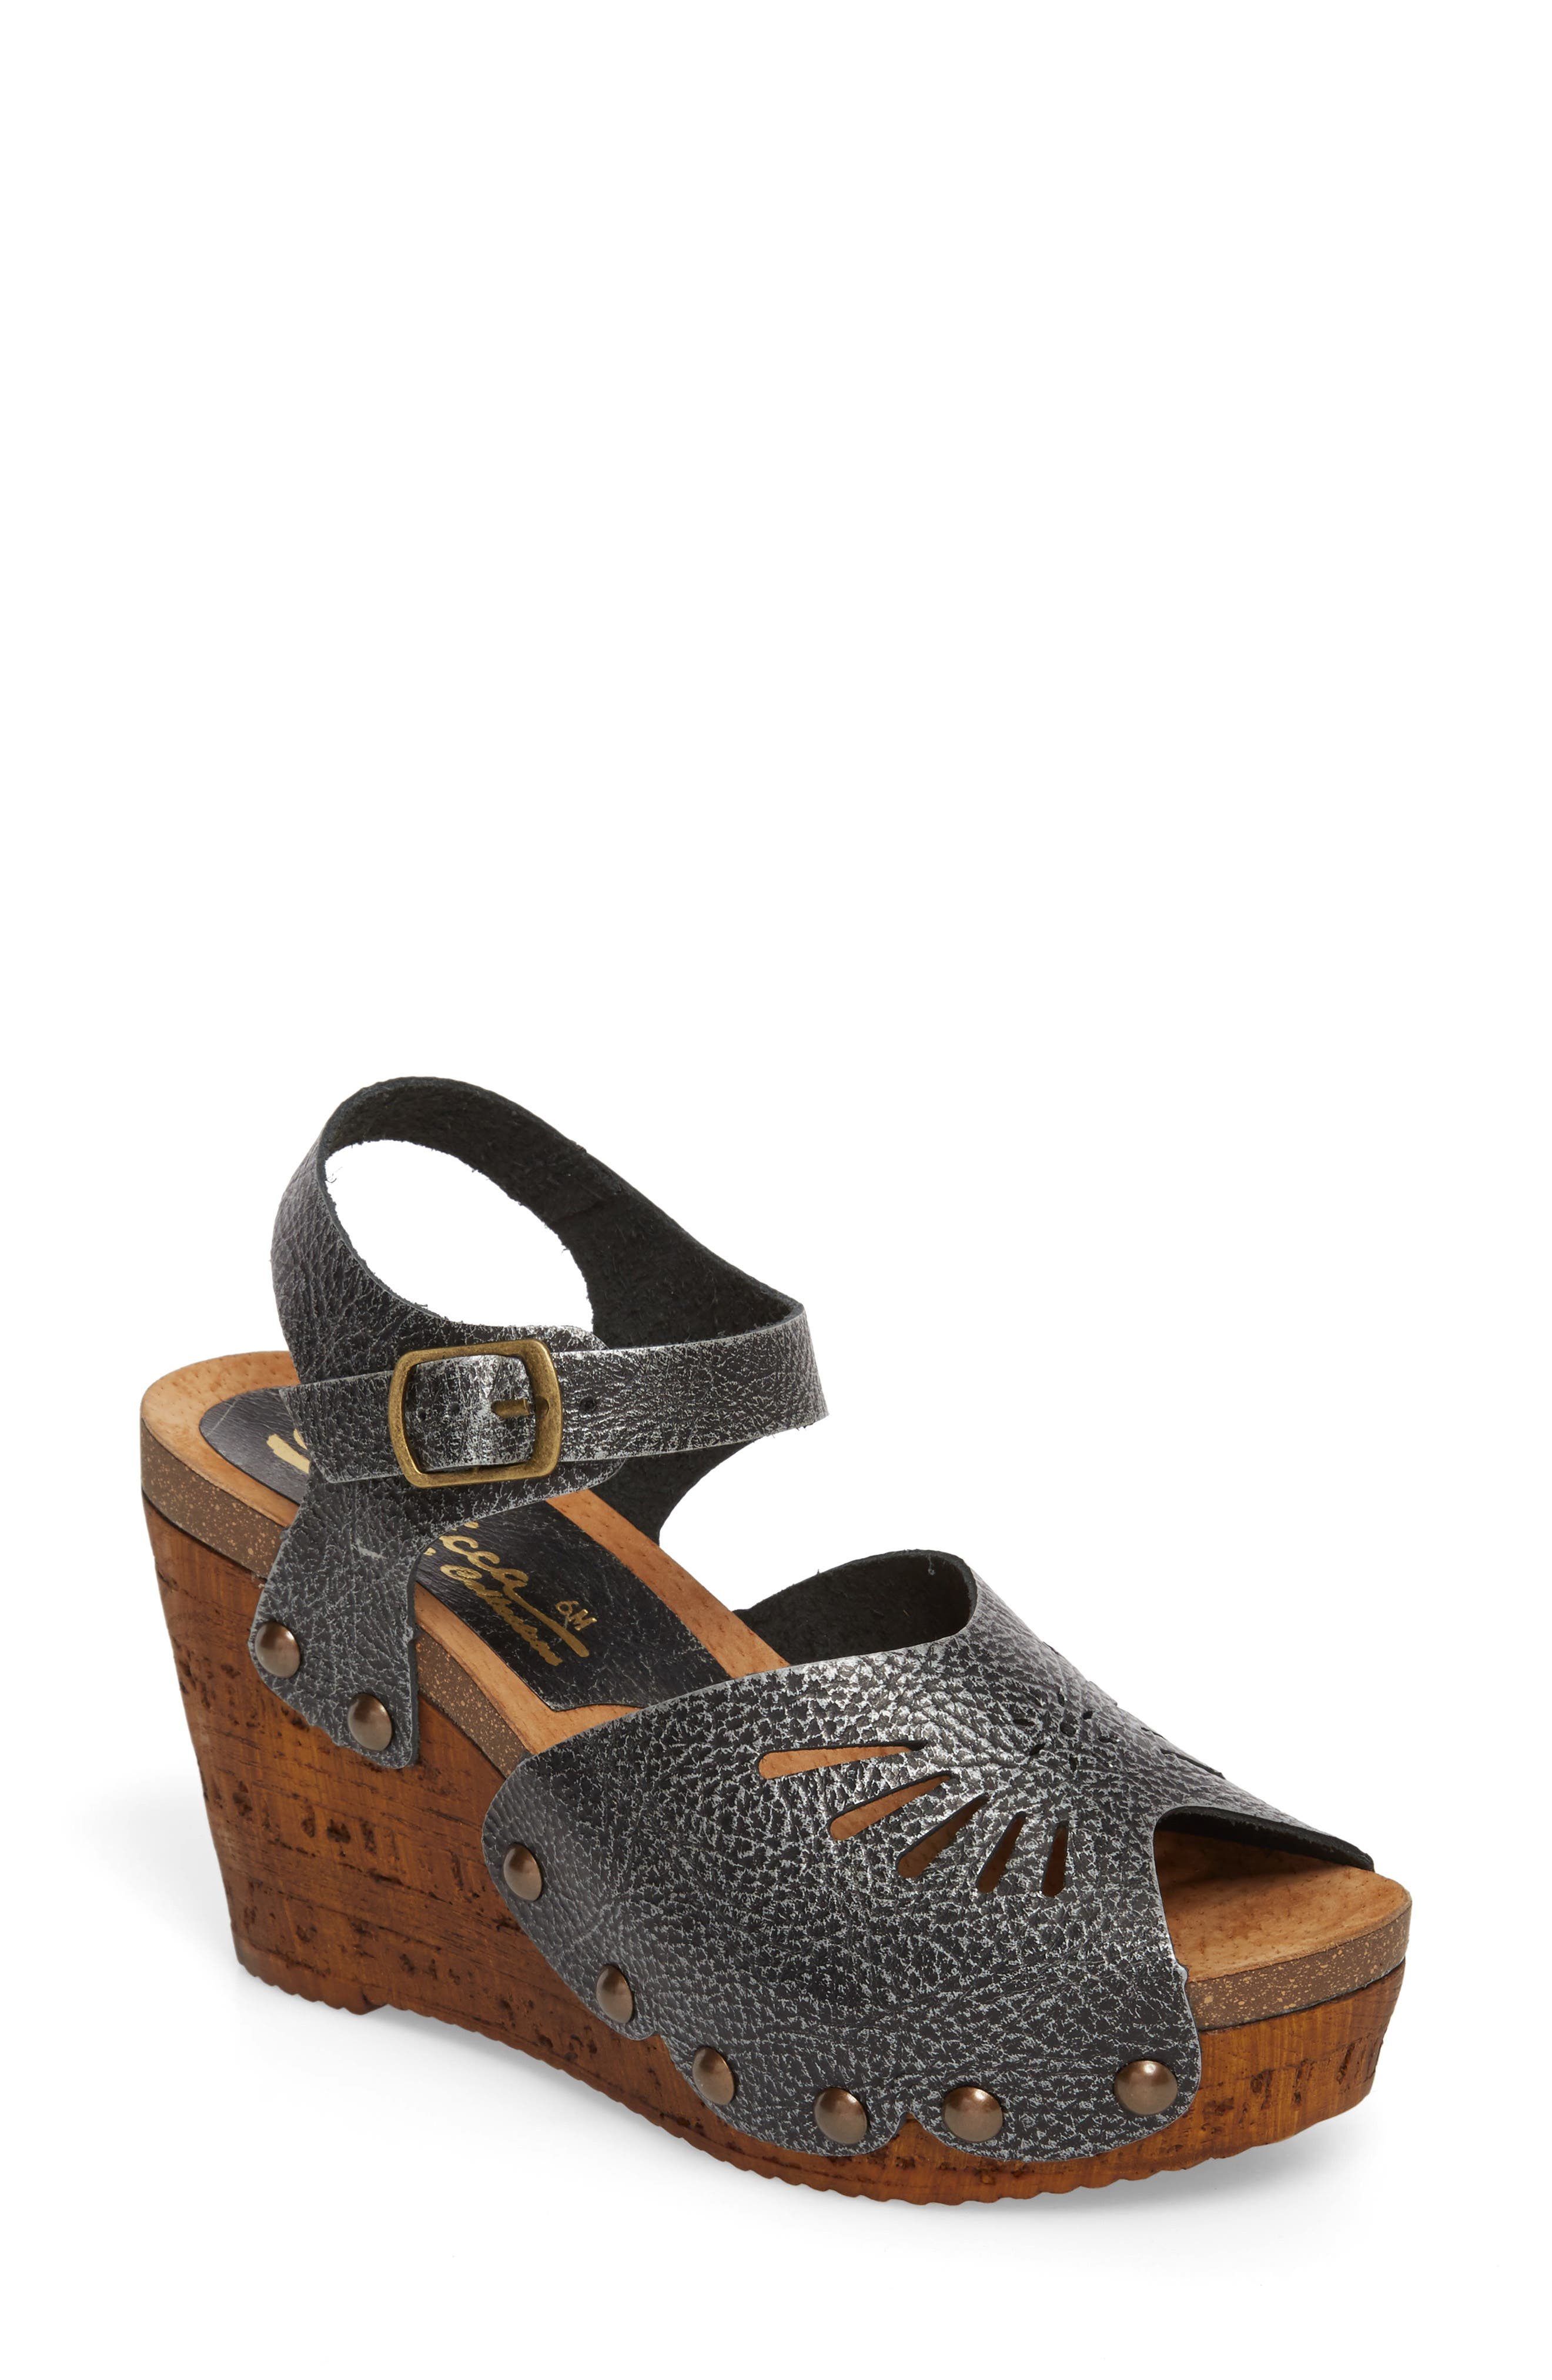 Langsa Wedge Sandal,                         Main,                         color,